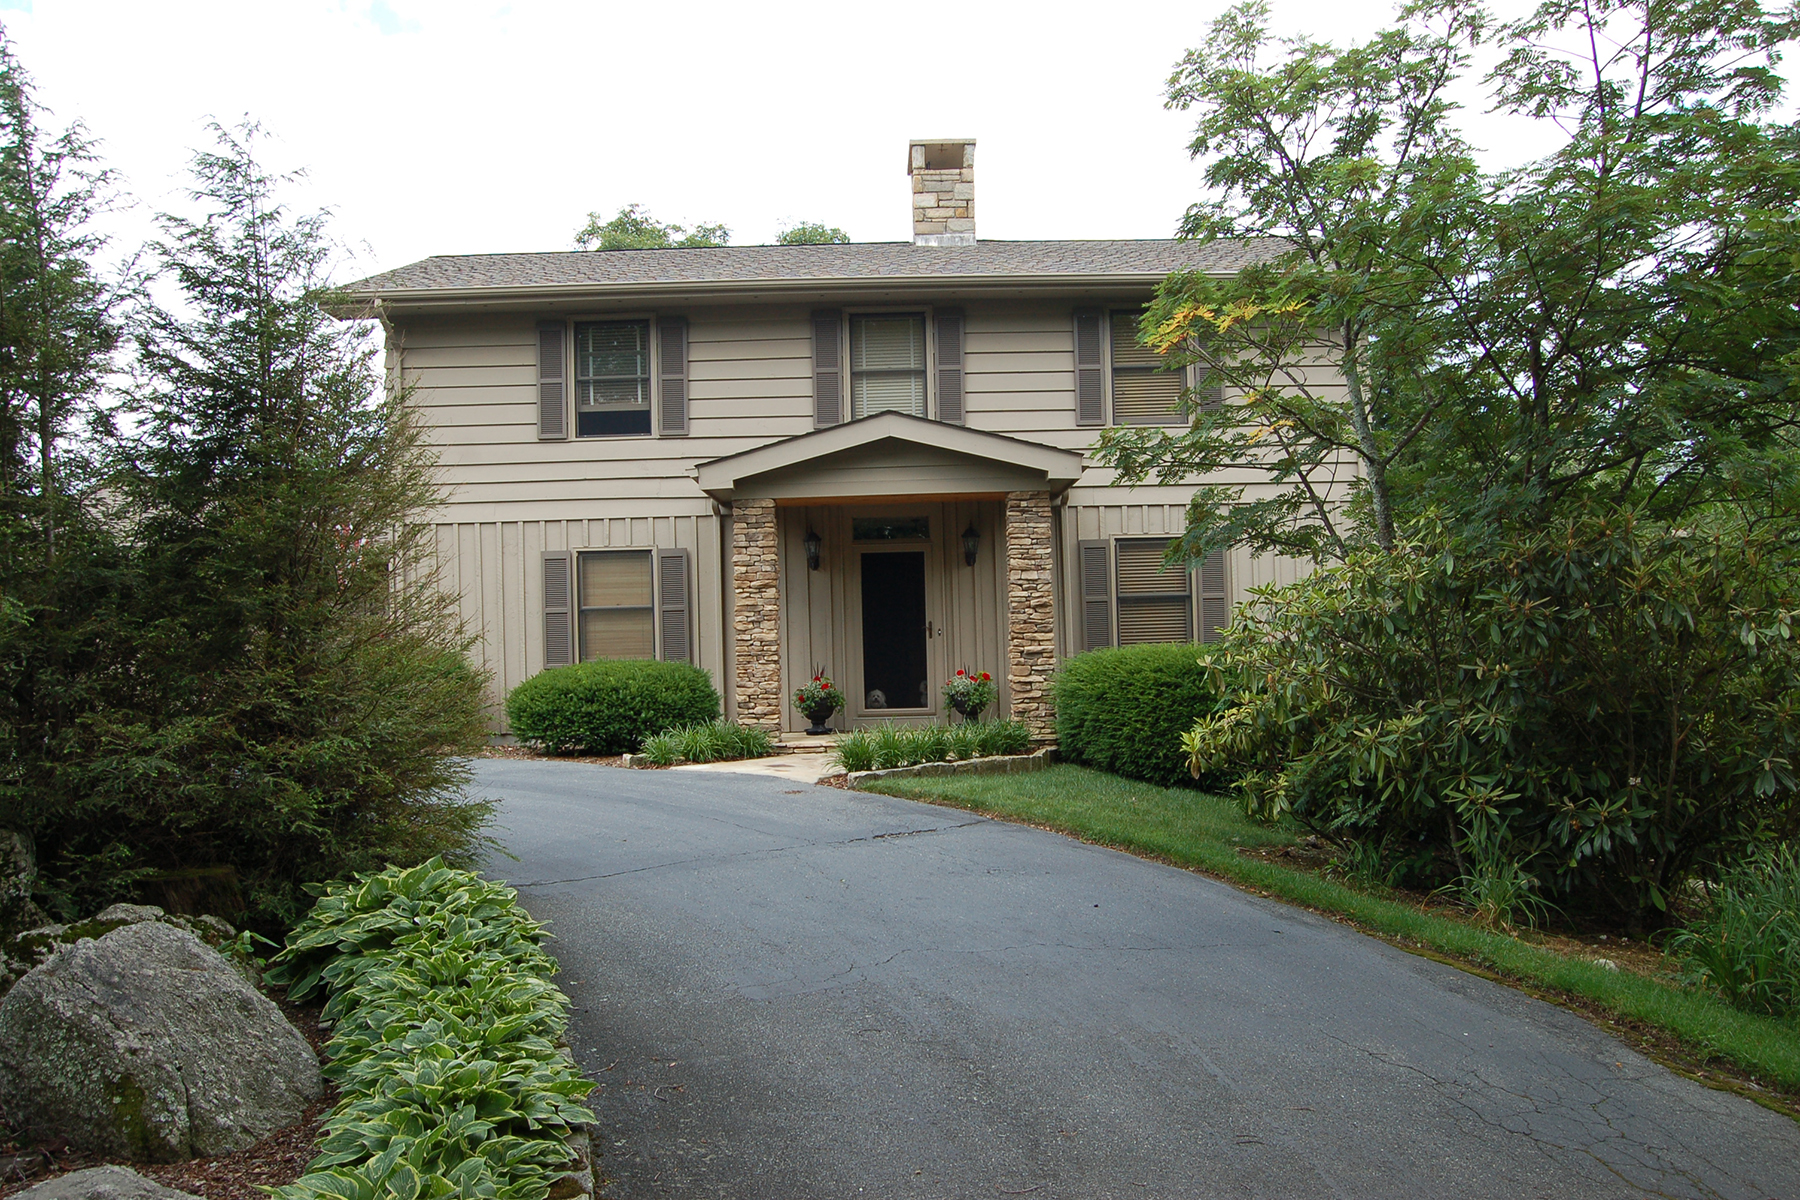 Single Family Home for Sale at BLOWING ROCK 427 Country Club Dr., Blowing Rock, North Carolina 28605 United States